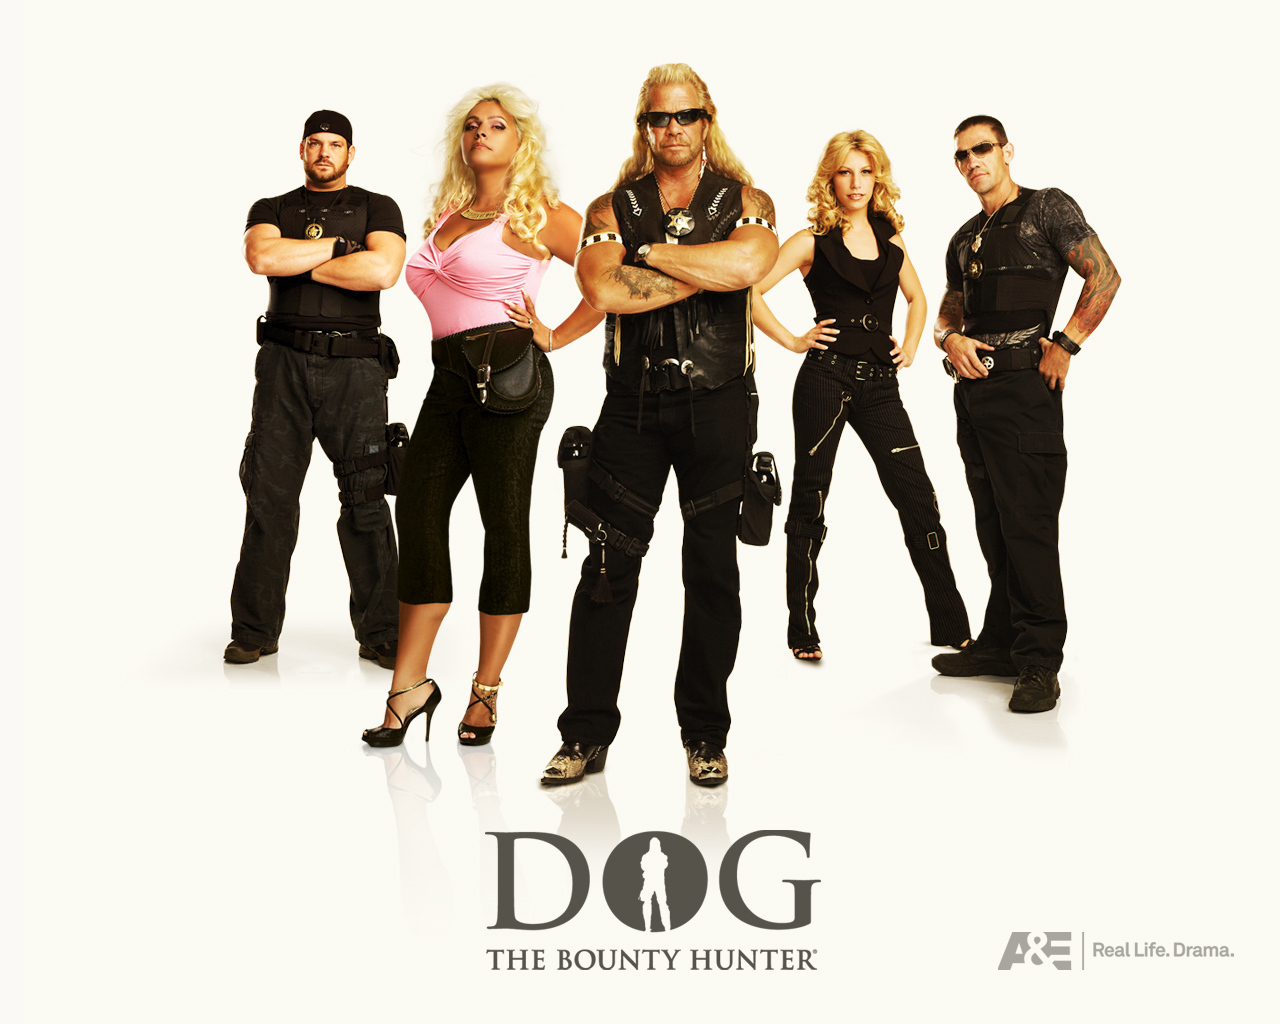 Beth Dog Bounty Hunter